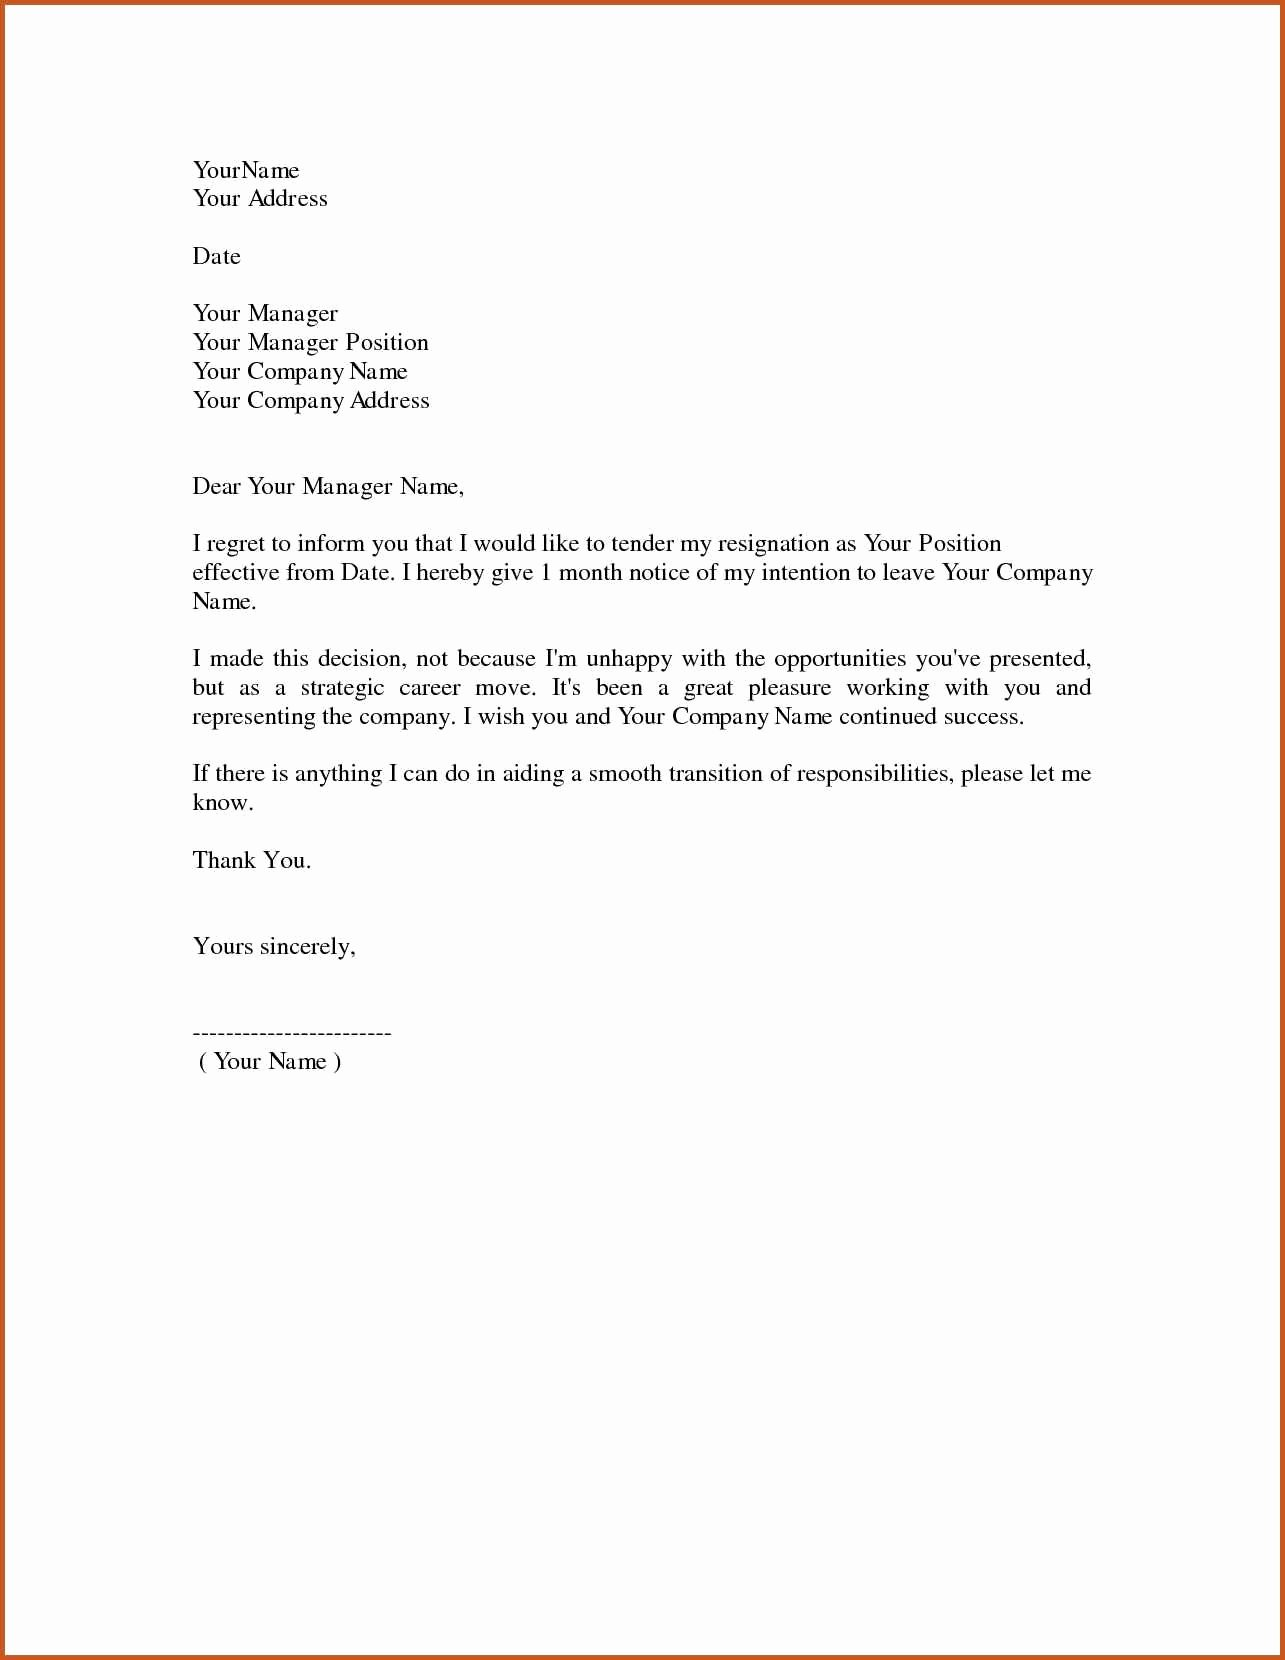 Letter Of Retirement Template Inspirational Retirement Letter to Employer Template Samples